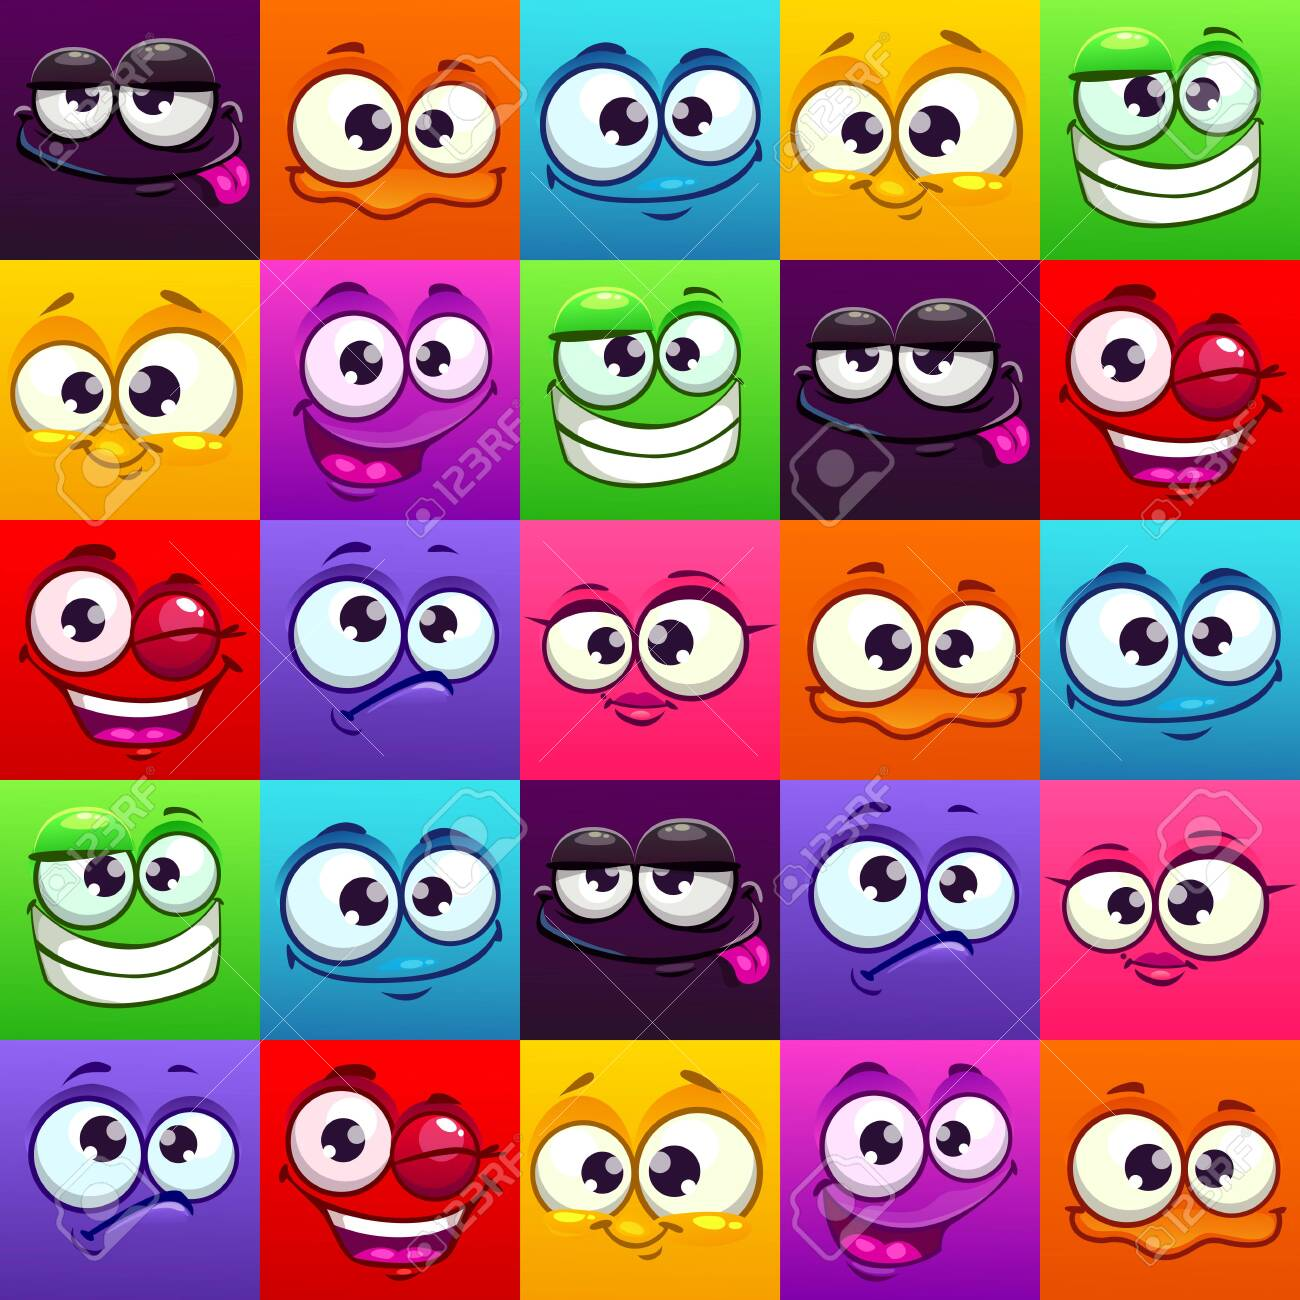 Seamless pattern with funny colorful emoji faces. - 149046468